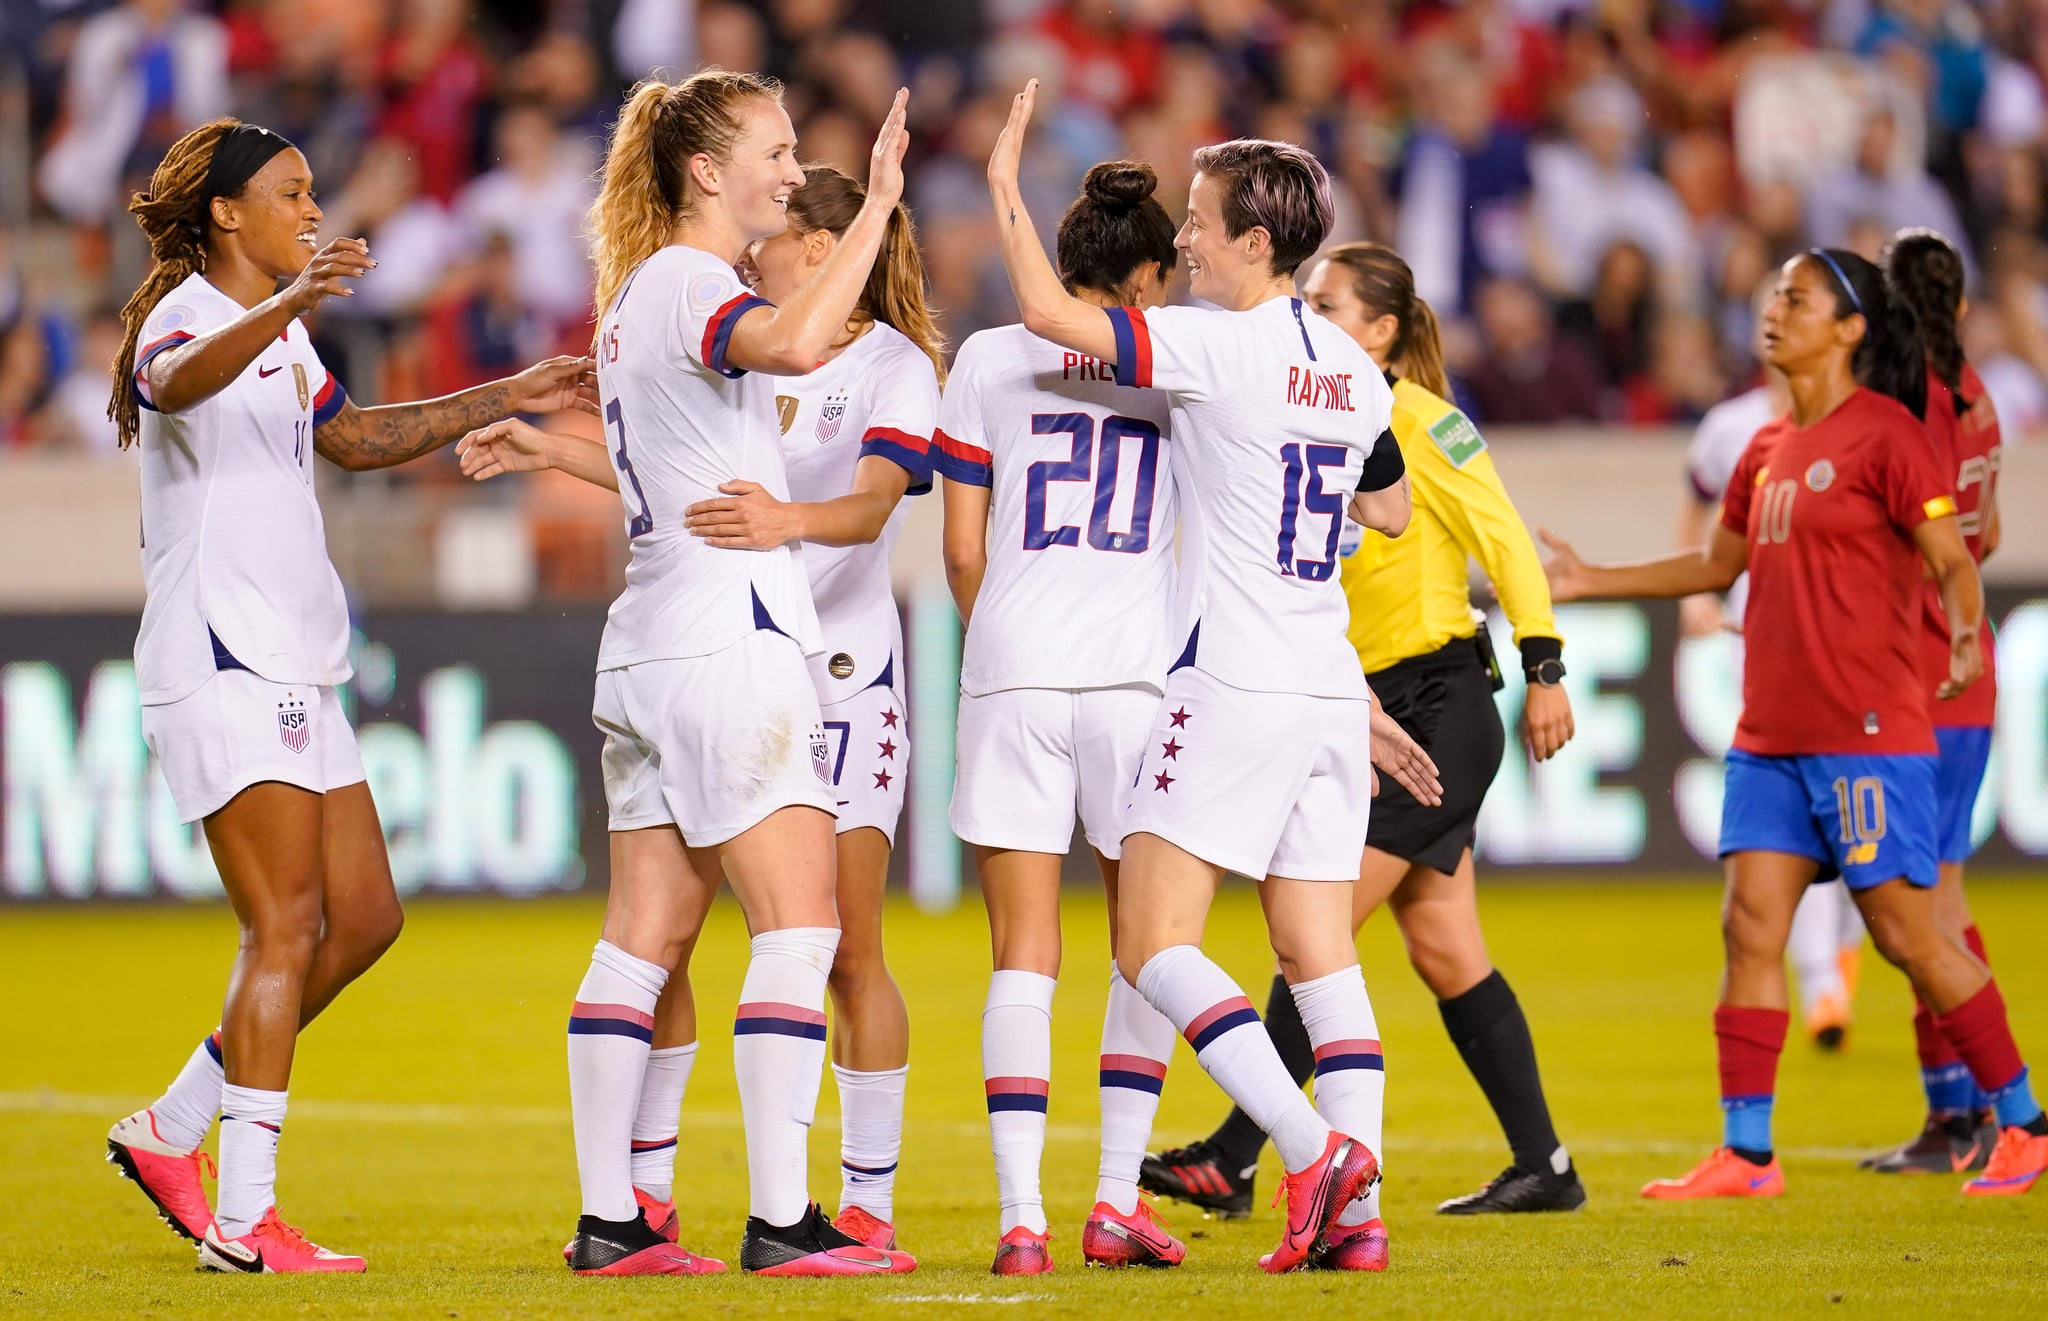 HOUSTON, TX - FEBRUARY 03: Samantha Mewis #3 of the United States celebrates her goal with Megan Rapinoe #15 during a game between Costa Rica and USWNT at BBVA Stadium on February 03, 2020 in Houston, Texas. (Photo by Brad Smith/ISI Photos/Getty Images)